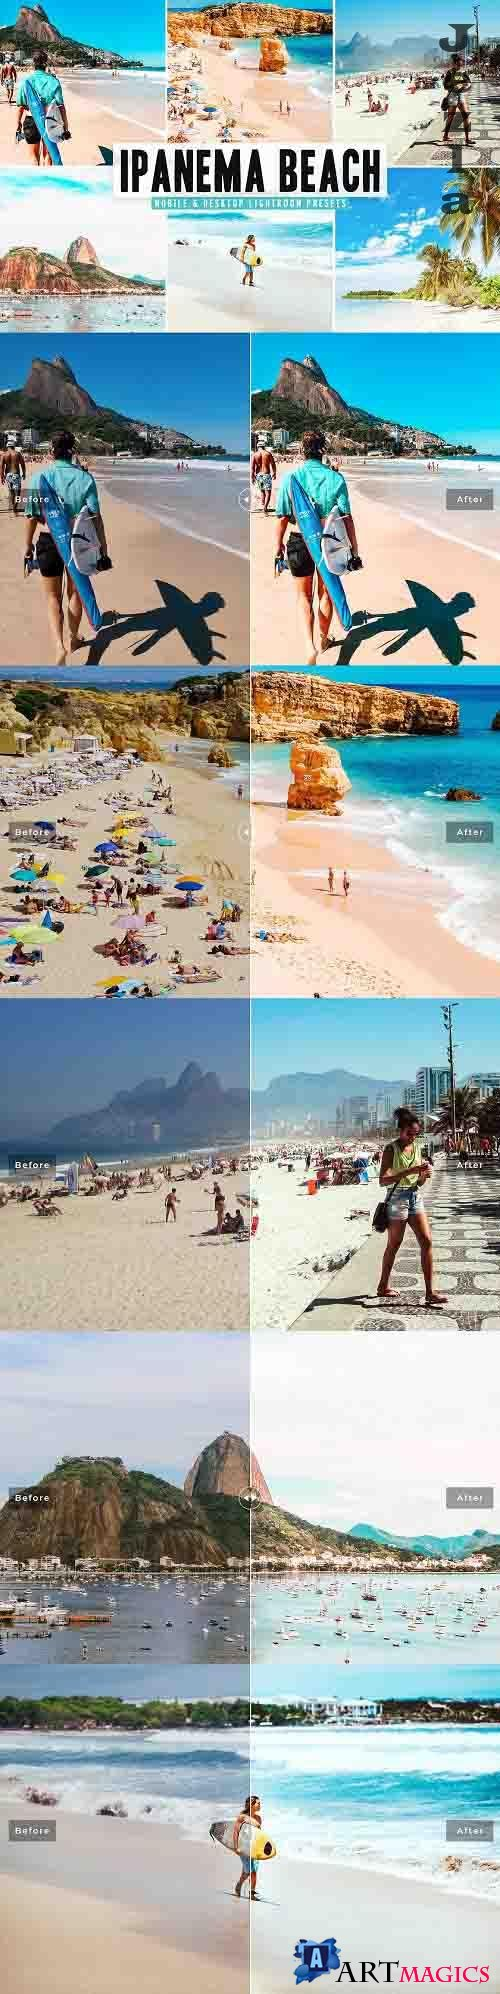 Ipanema Beach Pro Lightroom Presets - 5665929 - Mobile & Desktop